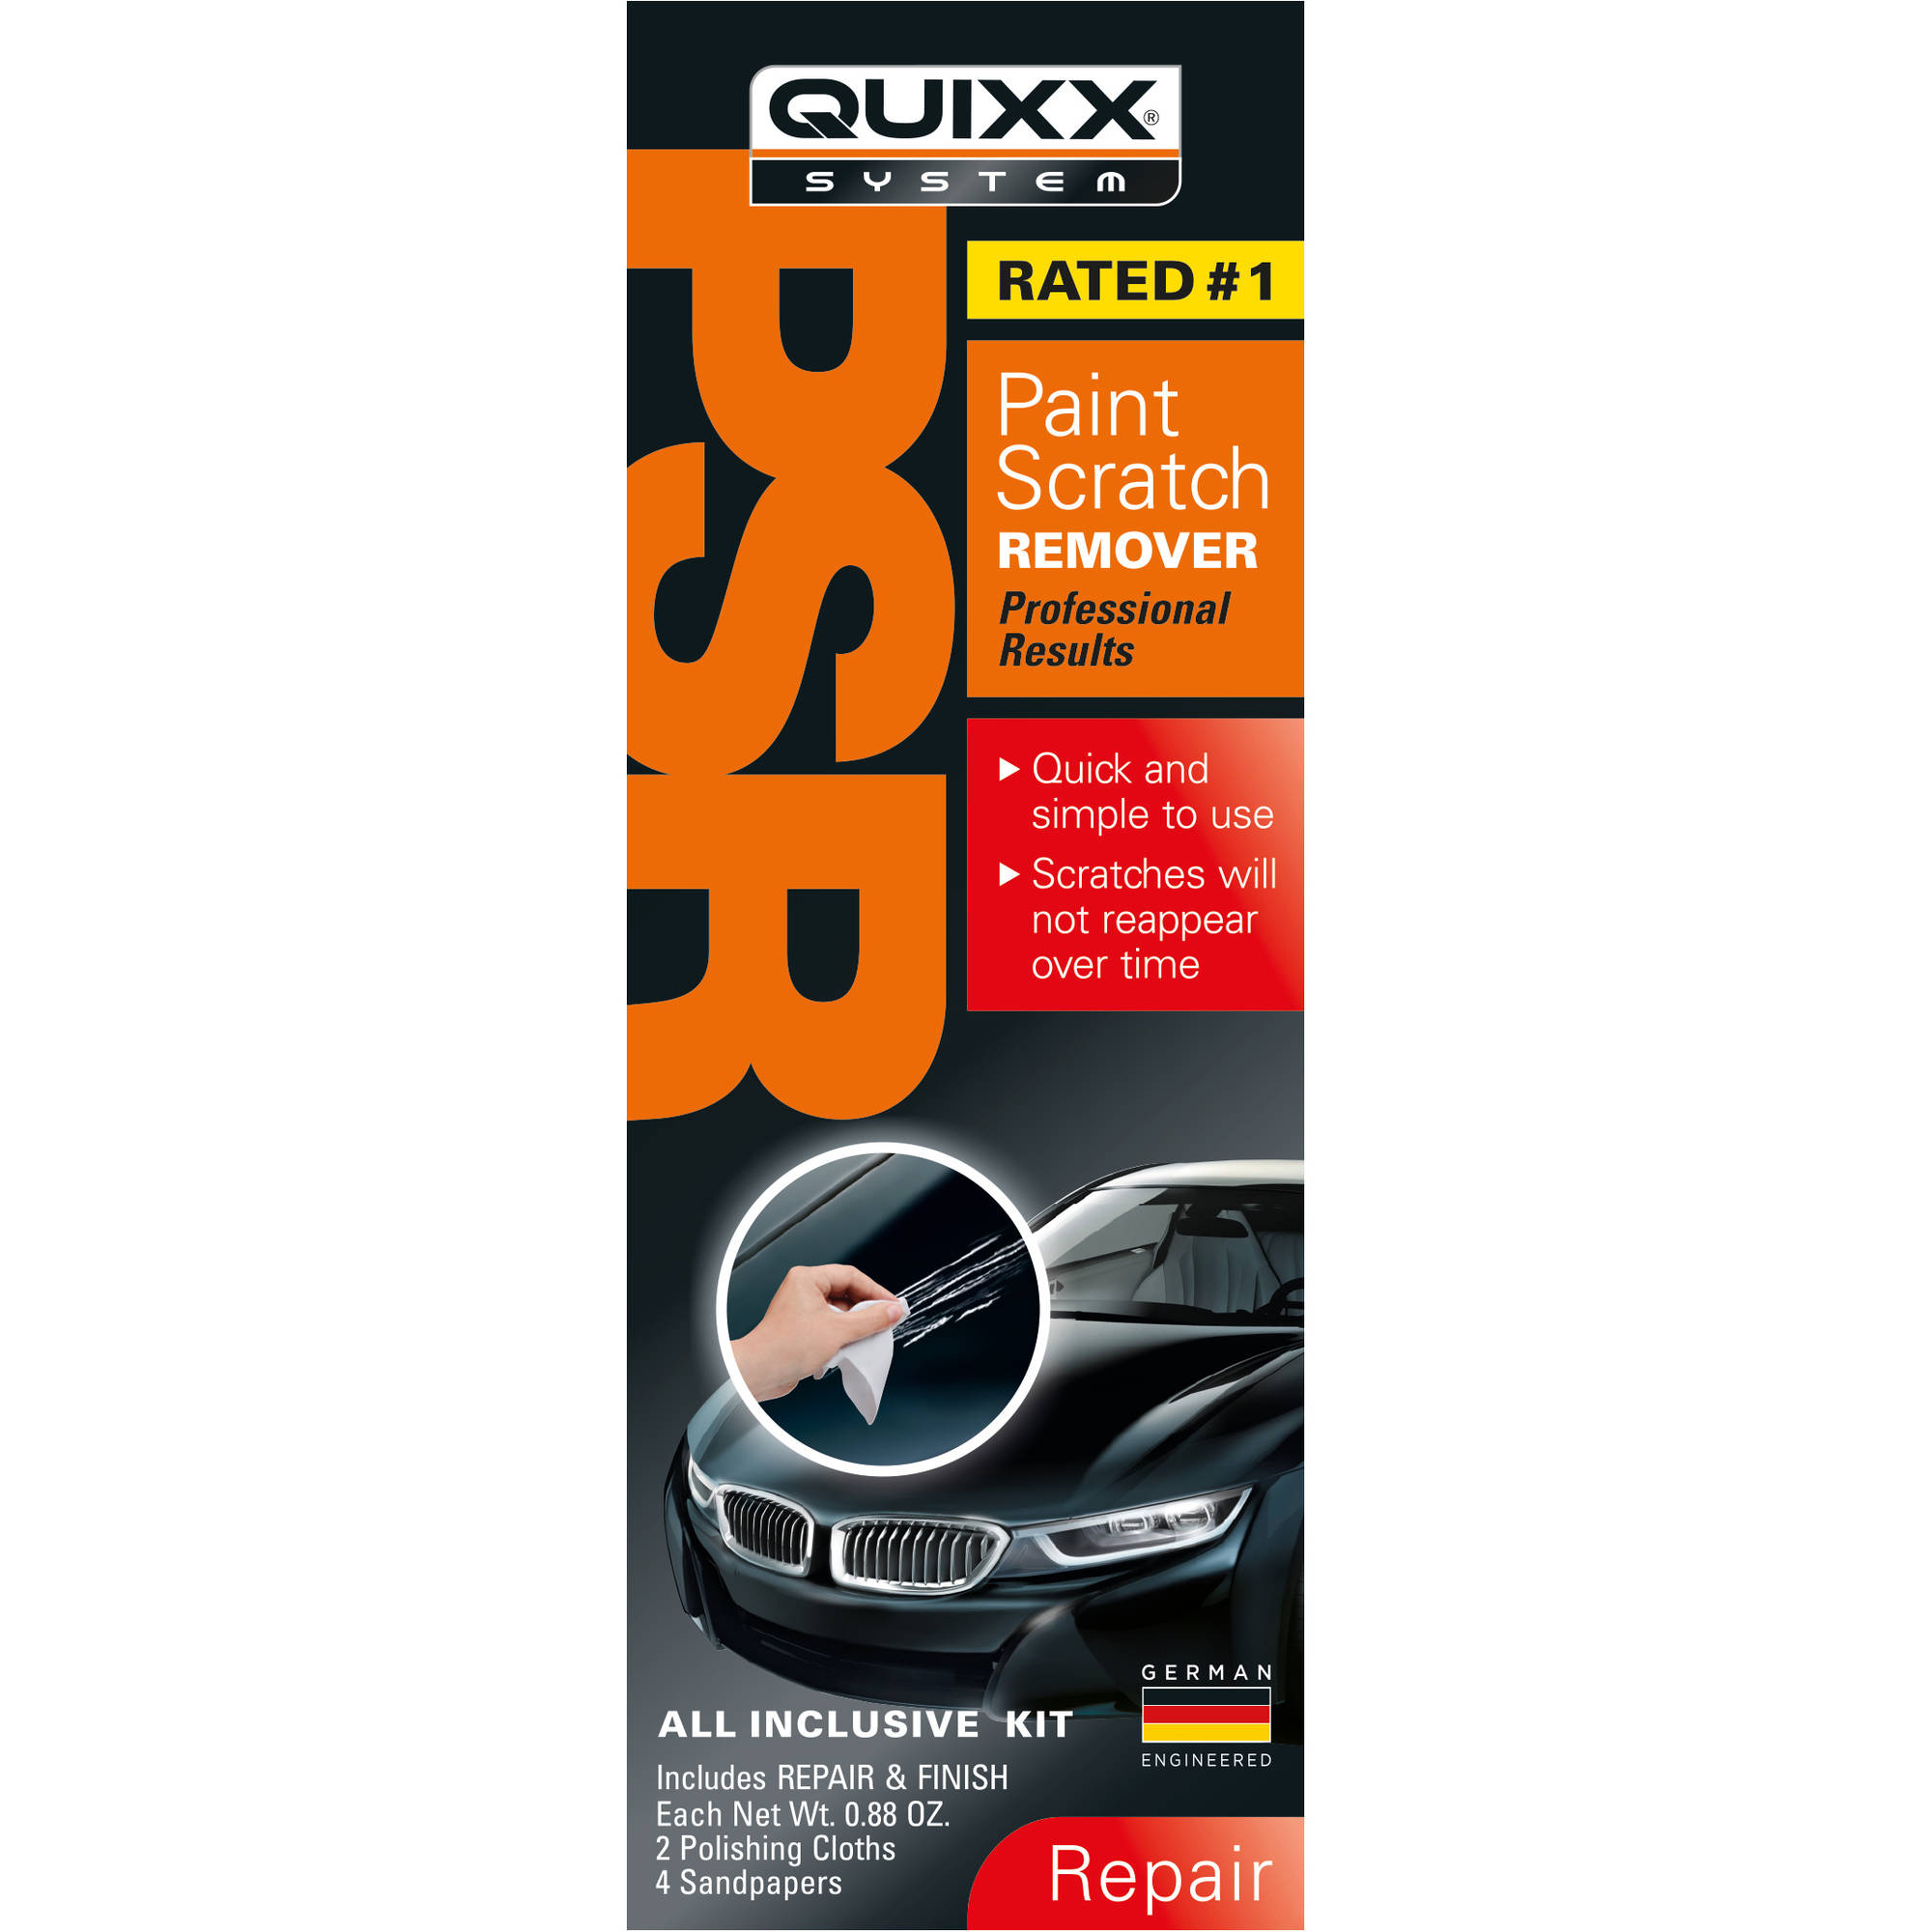 Quixx High Performance Paint Scratch Remover